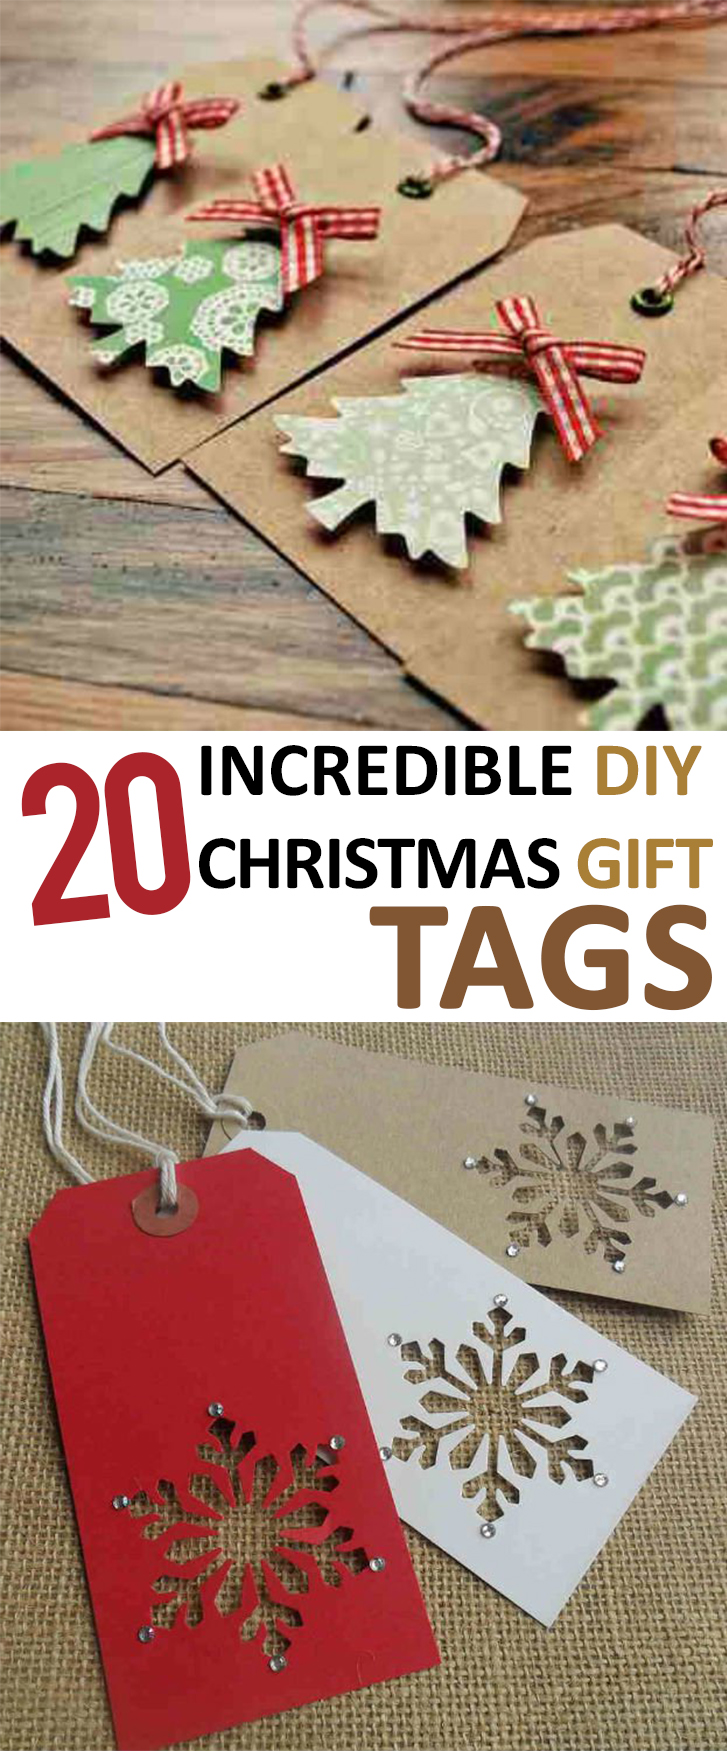 Christmas Gift Tags Diy.20 Incredible Diy Christmas Gift Tags